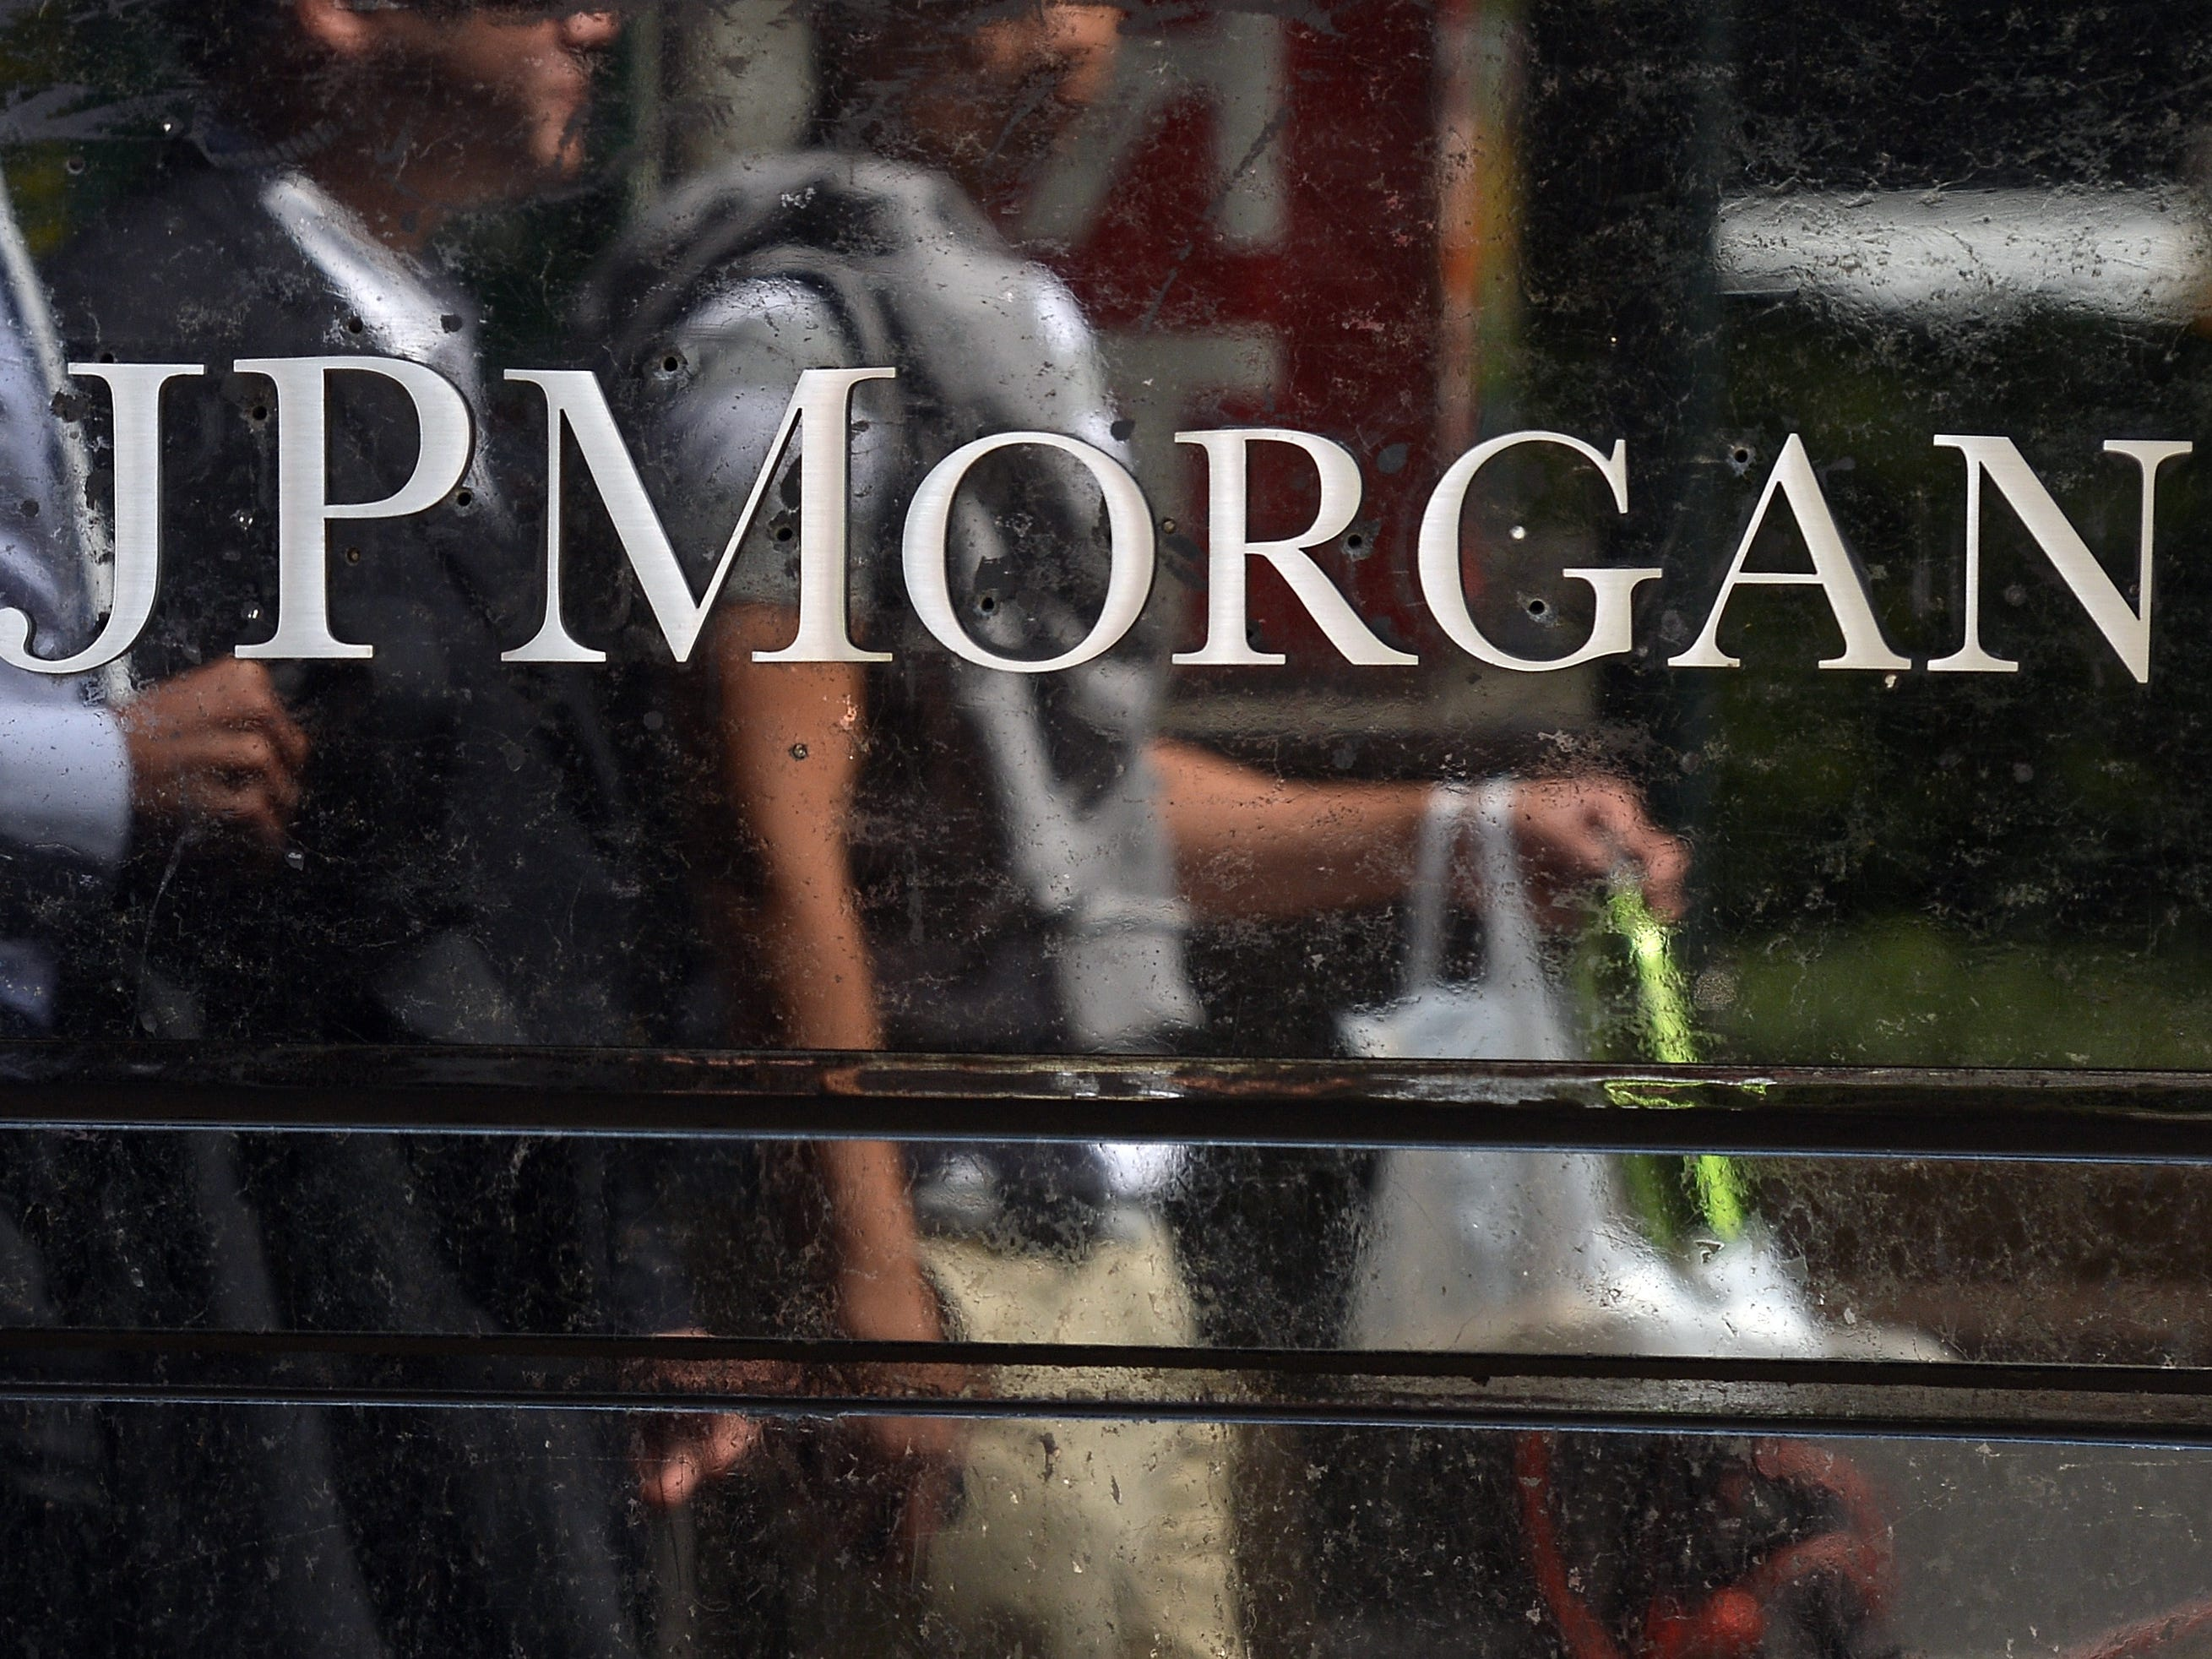 JPMorgan Chase, hiring 290. The bank and financial-services company is adding positions across Arizona. More info: careers.jpmorgan.com.